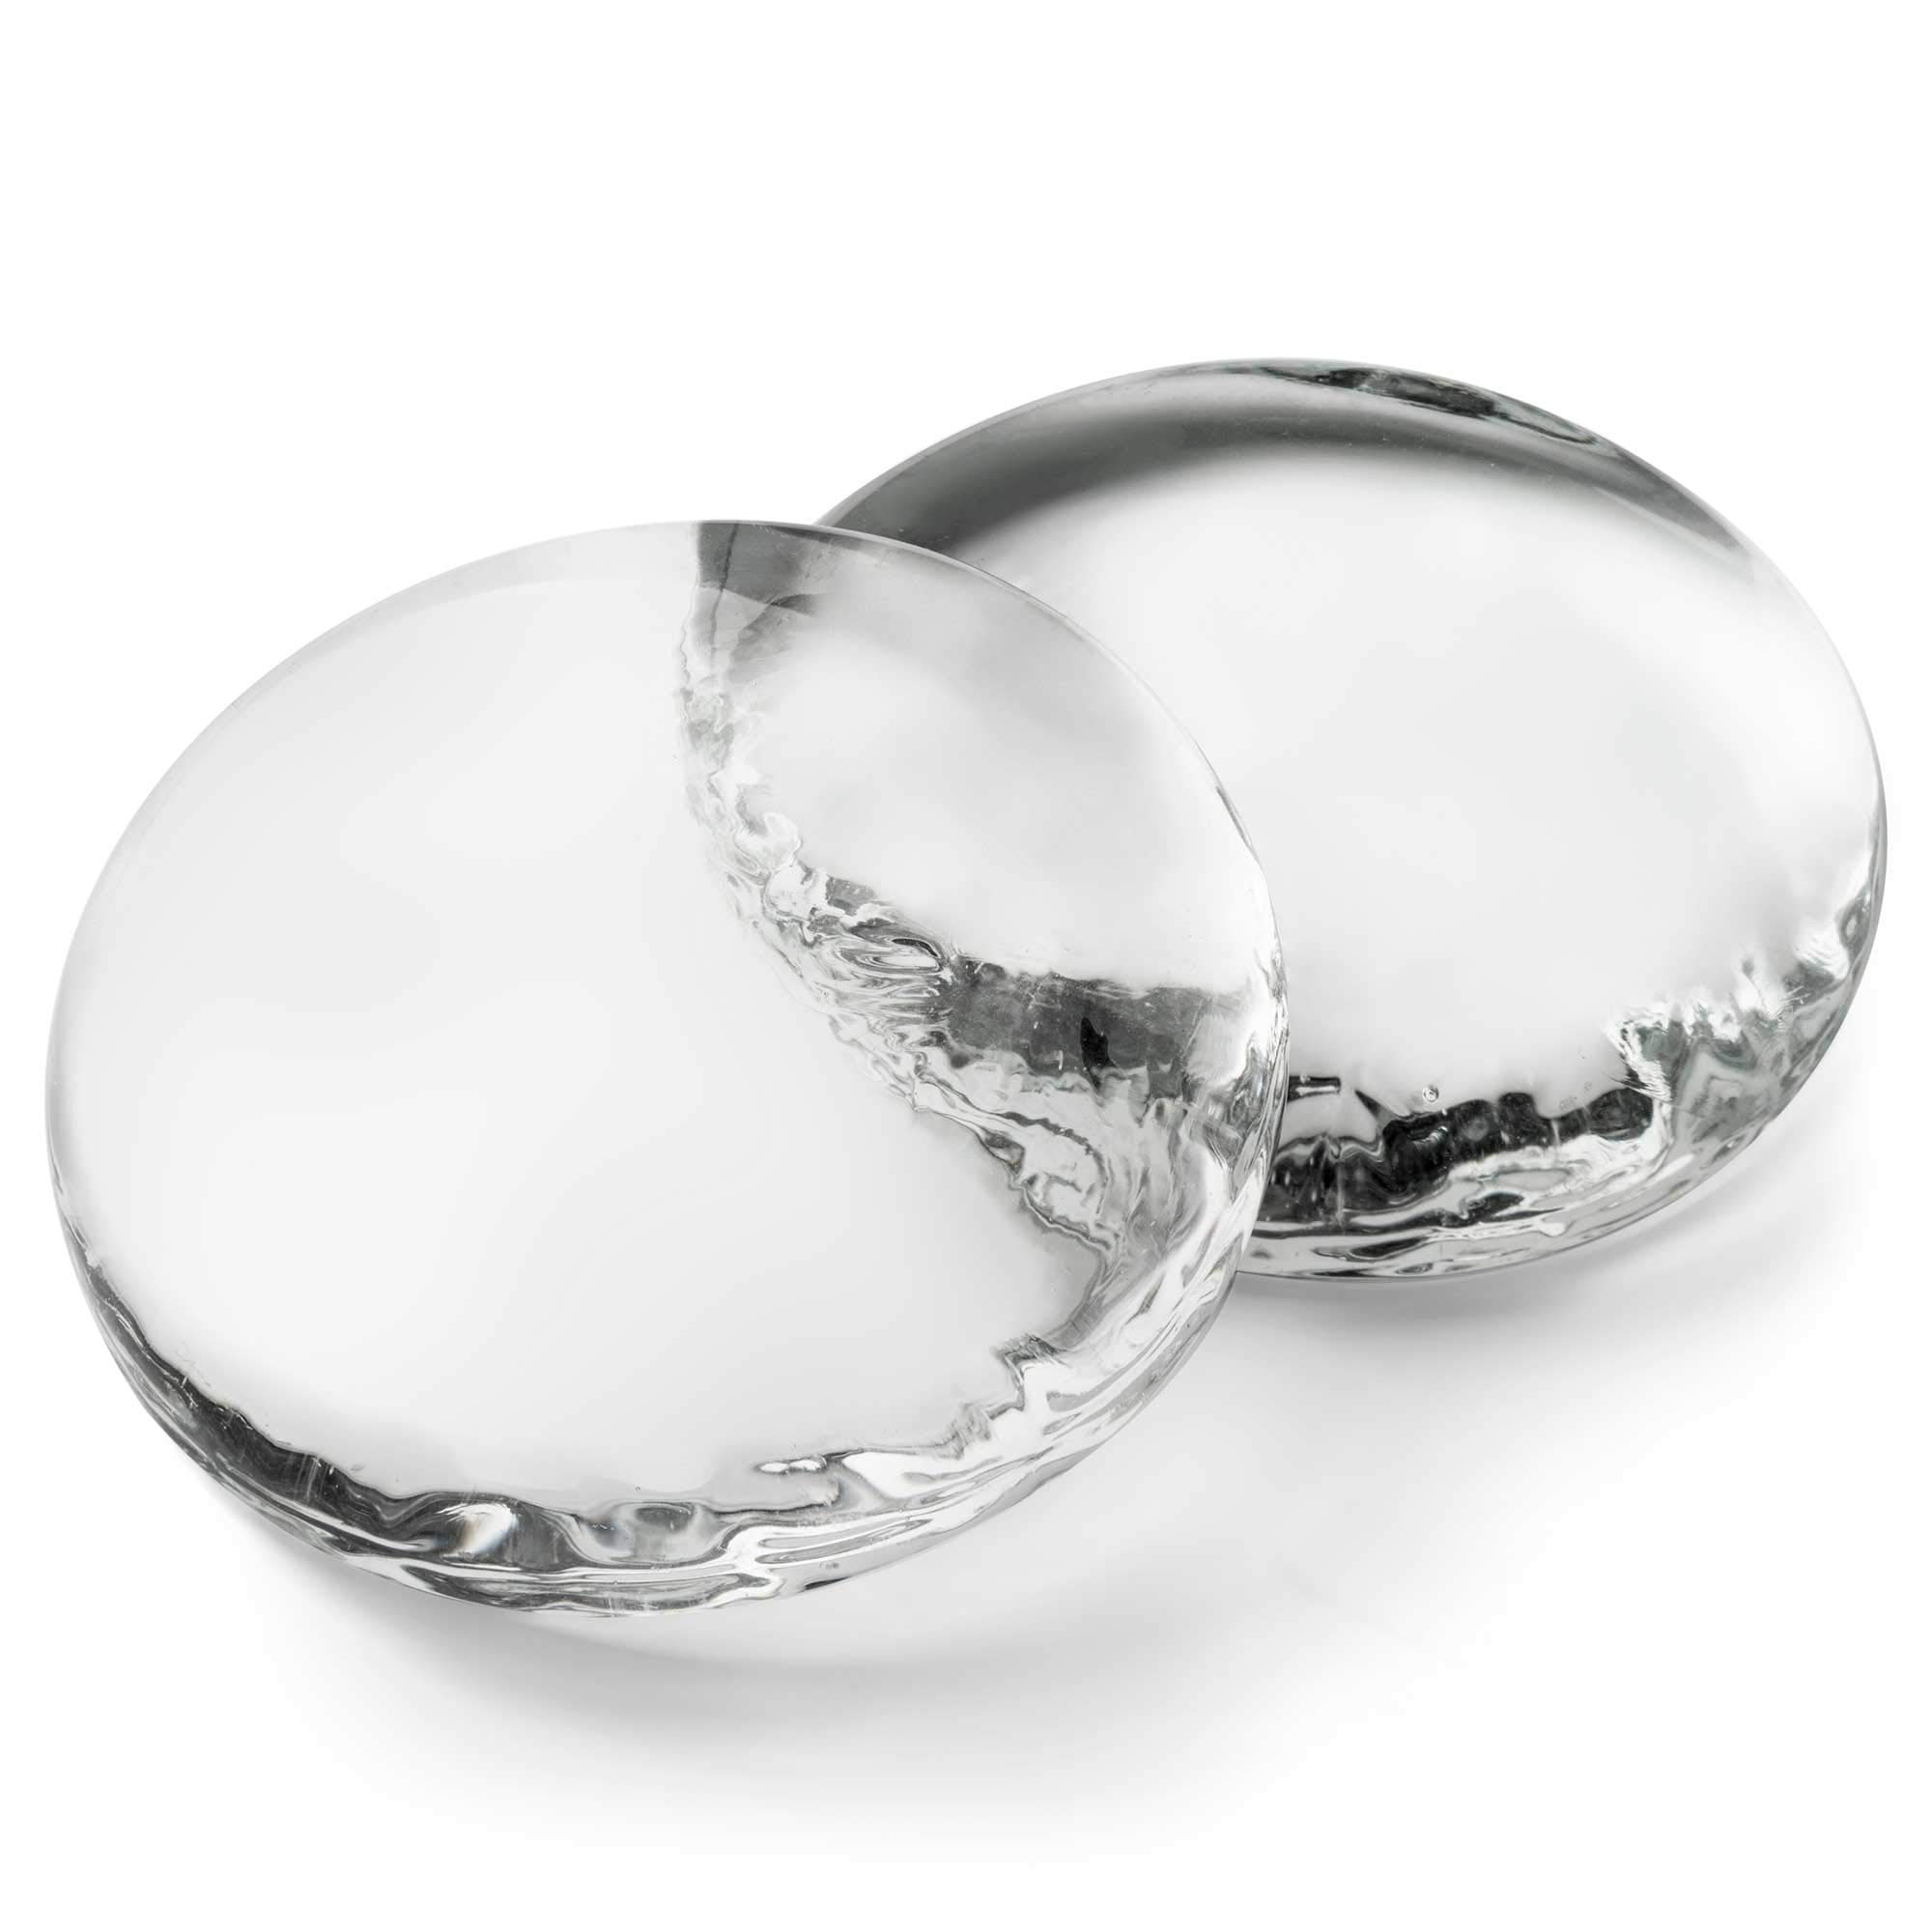 Gemnique 3X-Large Molded Glass Gems - Clear (48 oz.) by Gemnique